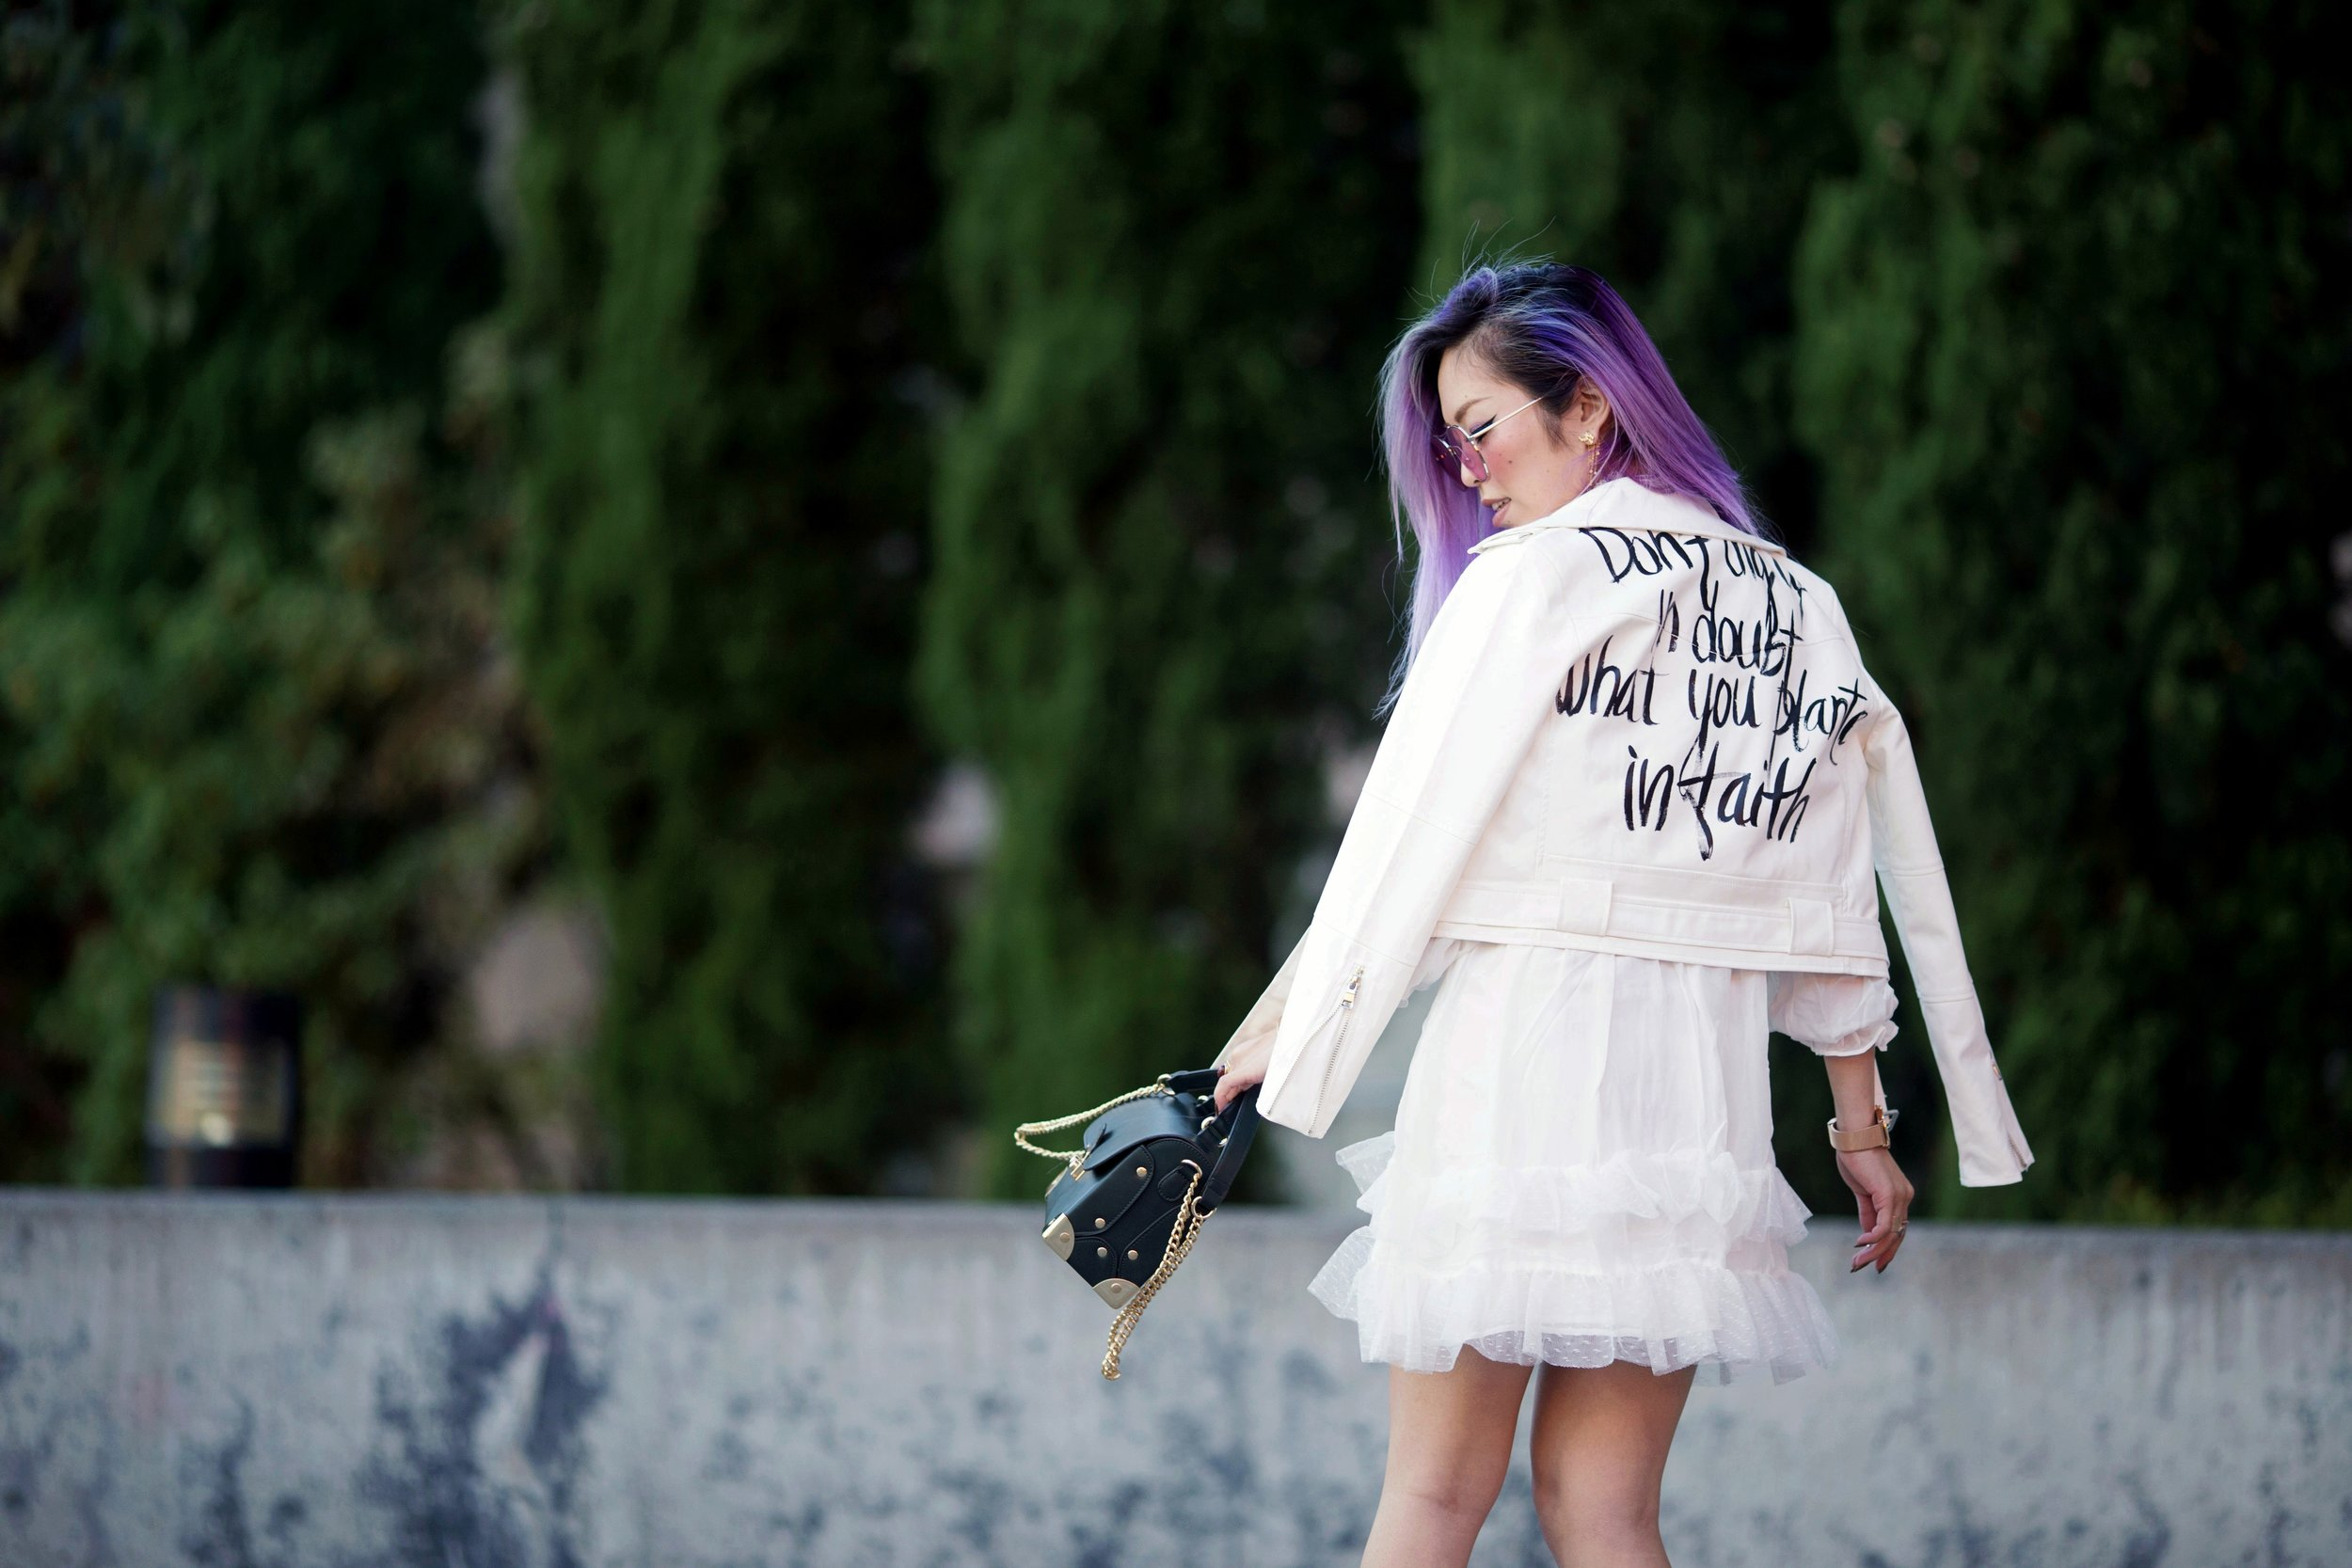 DEZZAL Letter Print White Biker Jacket & Lace Hem Layered Dress_Forever 21 Olive Bag_White Lace Choker_JustFab Lace Up Sandals_Pink Retro Sunglasses_Aikas Love Closet_Seattle Fashion Blogger from Japan_Mermaid Hair_Purple Hair_Don't dig up in double what you planted in faith